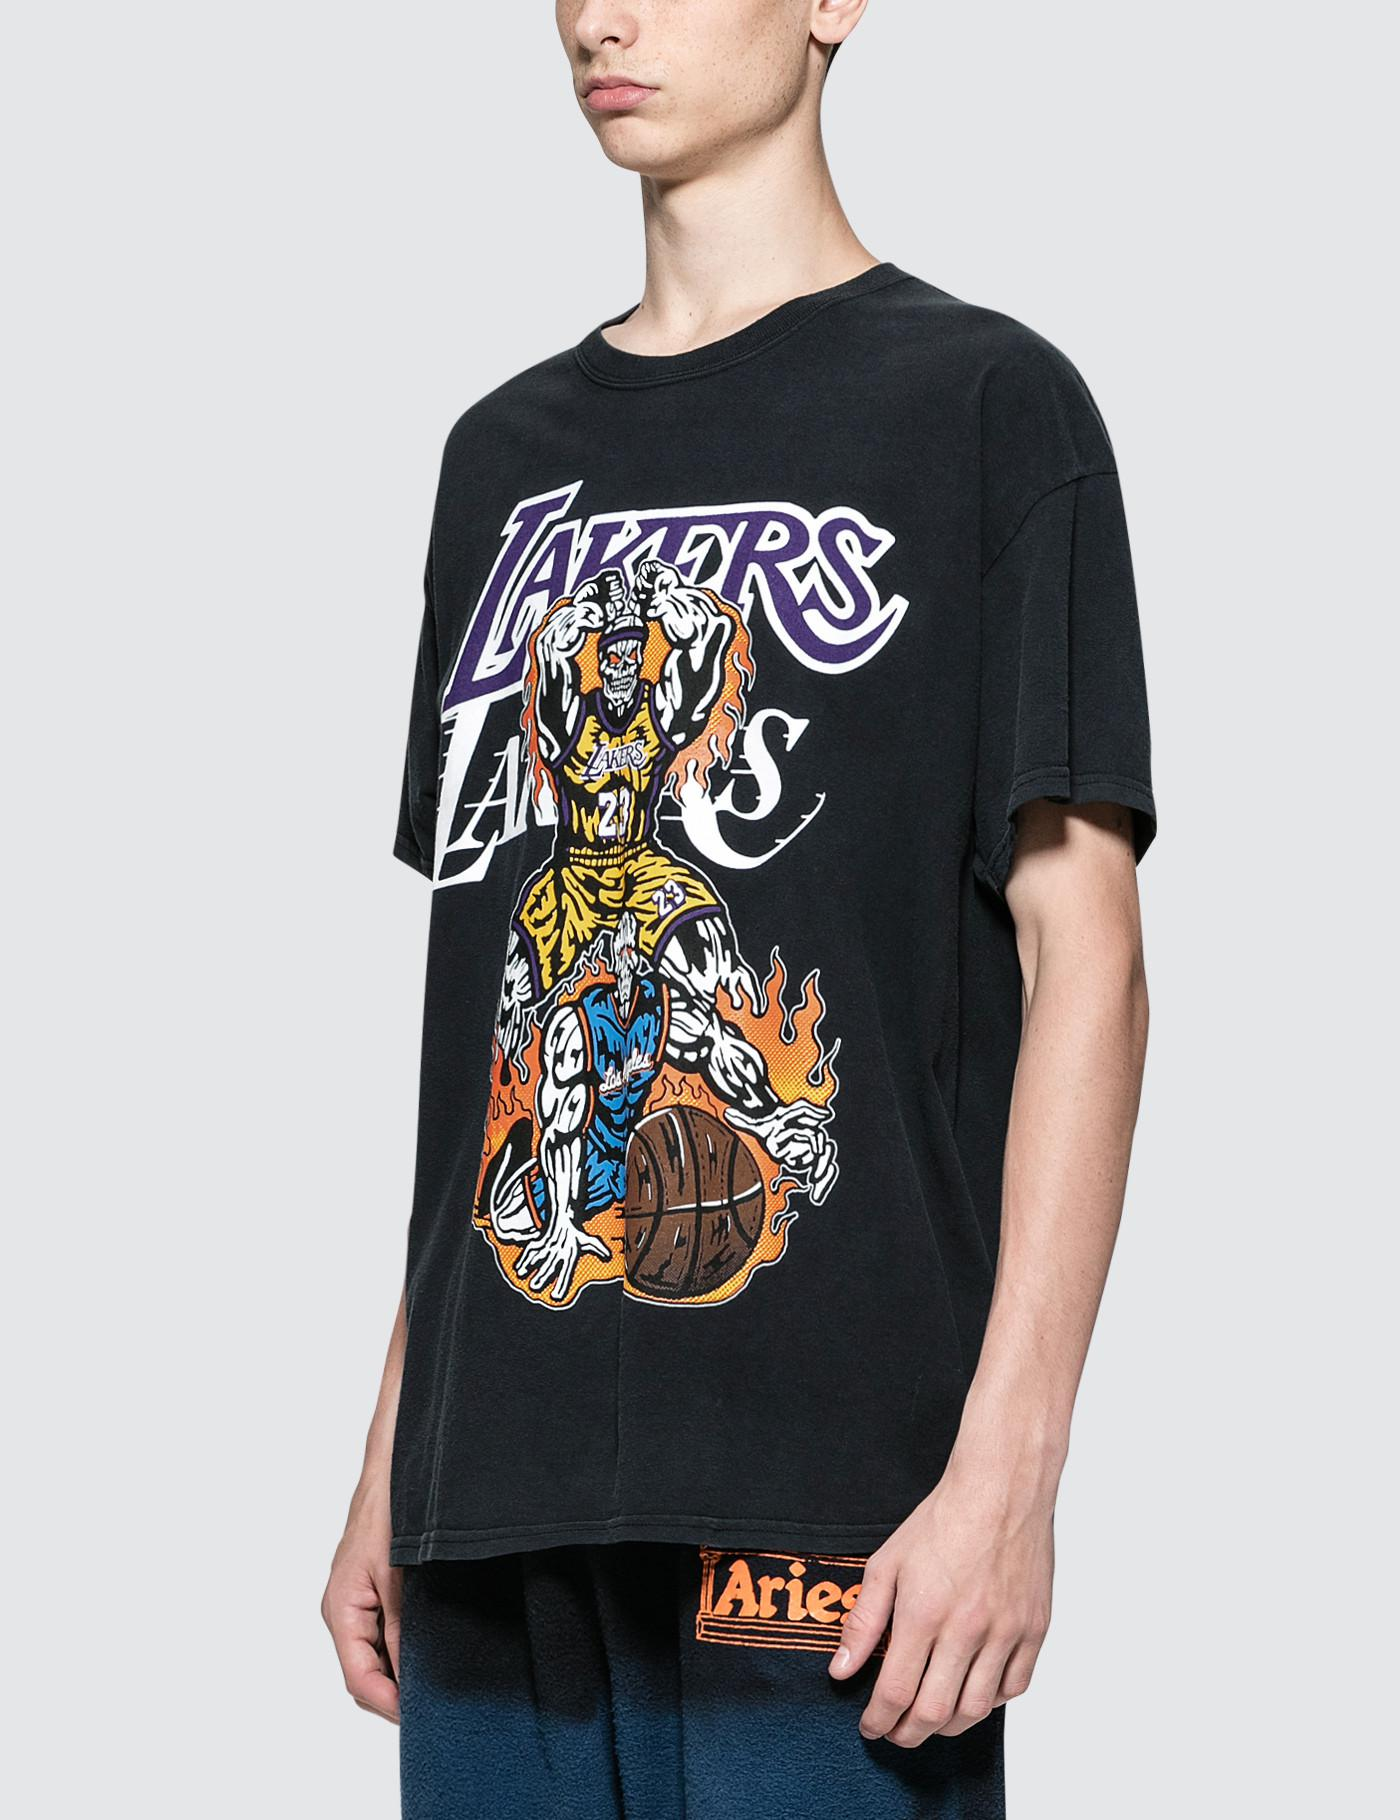 f87fee8a6a6 Warren Lotas Lakers Athletics T-shirt in Black for Men - Lyst